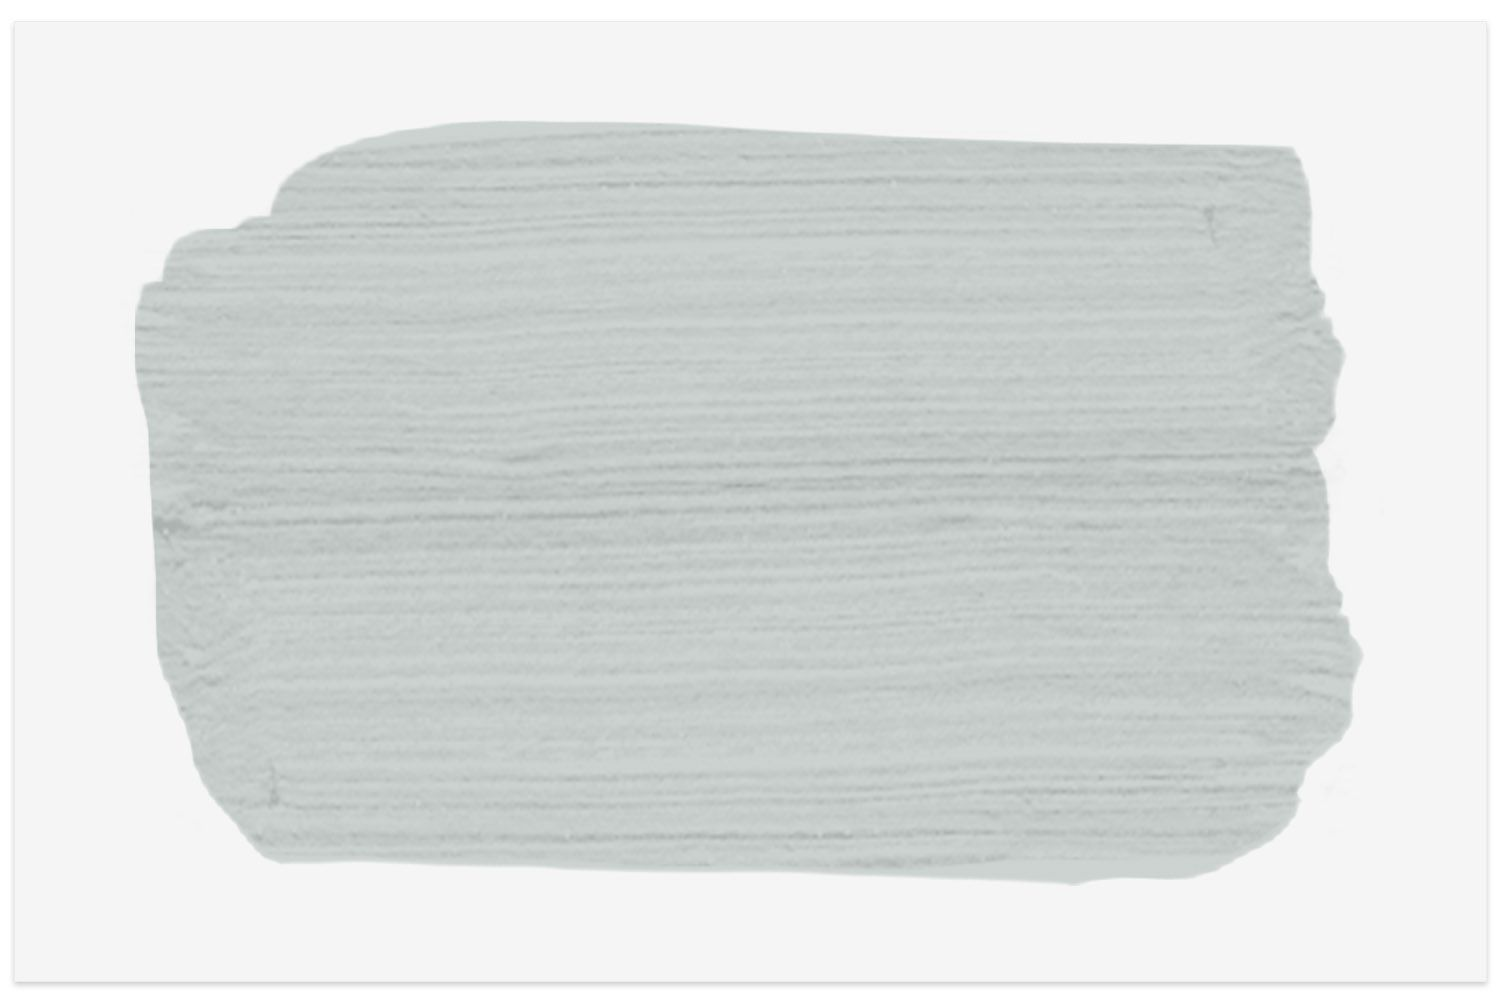 Pale Smoke 1584 paint swatch from Benjamin Moore